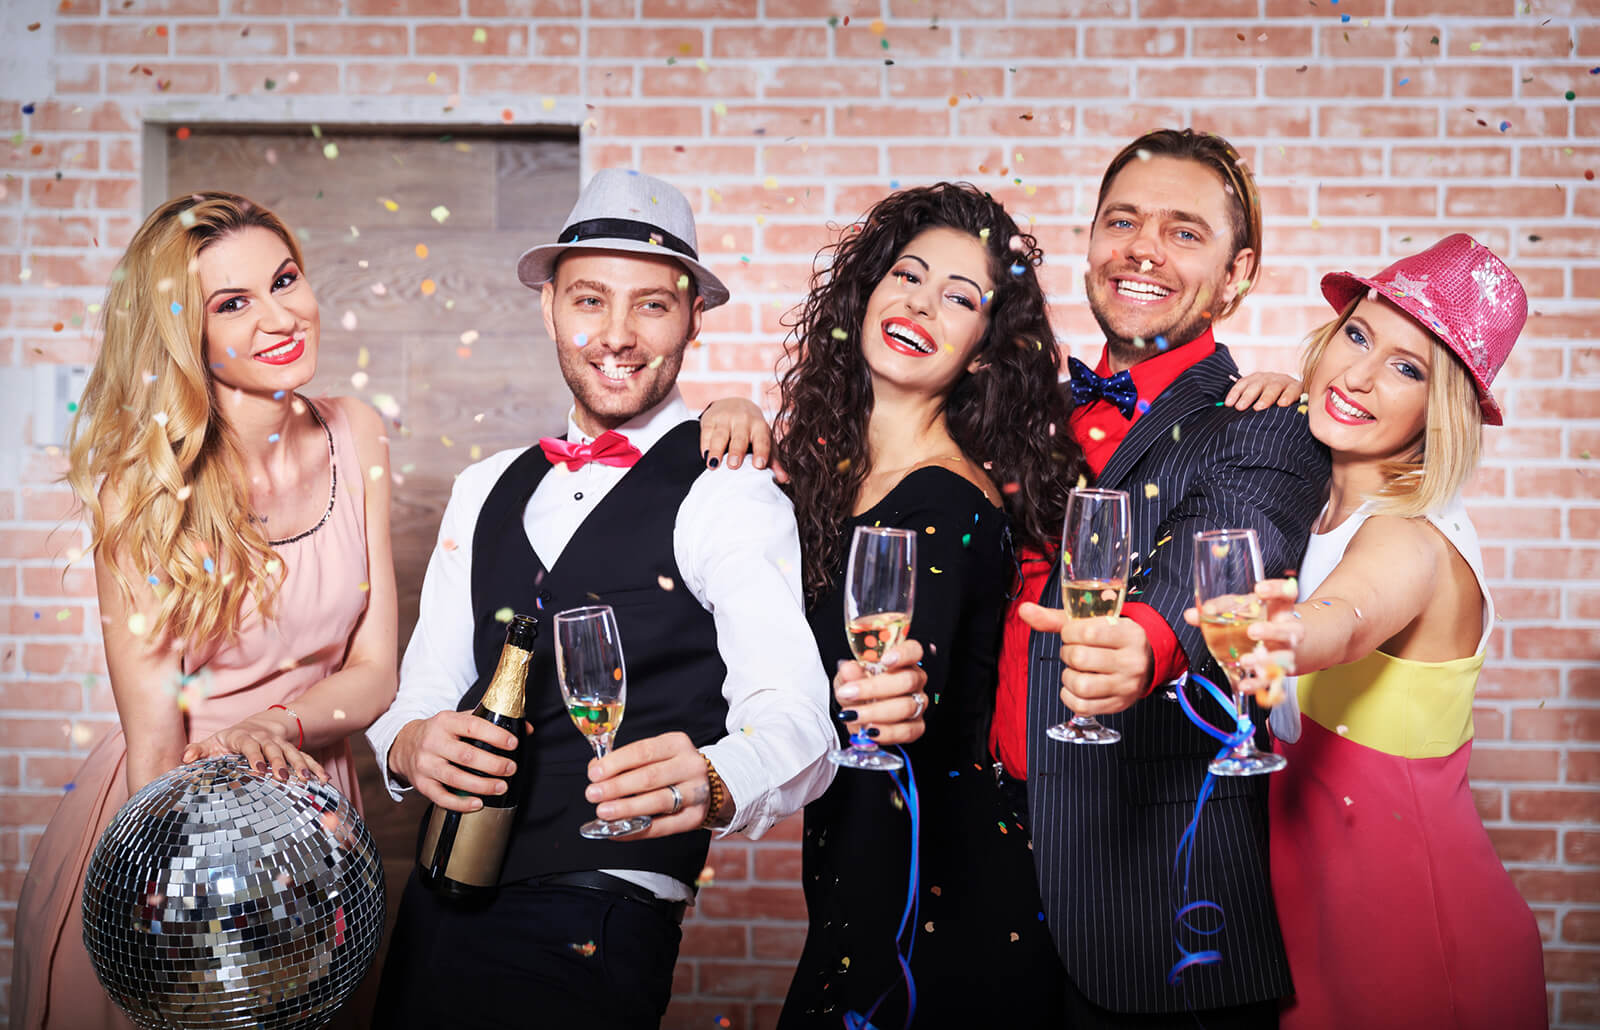 New Year's Eve Costumes | LoveToKnow